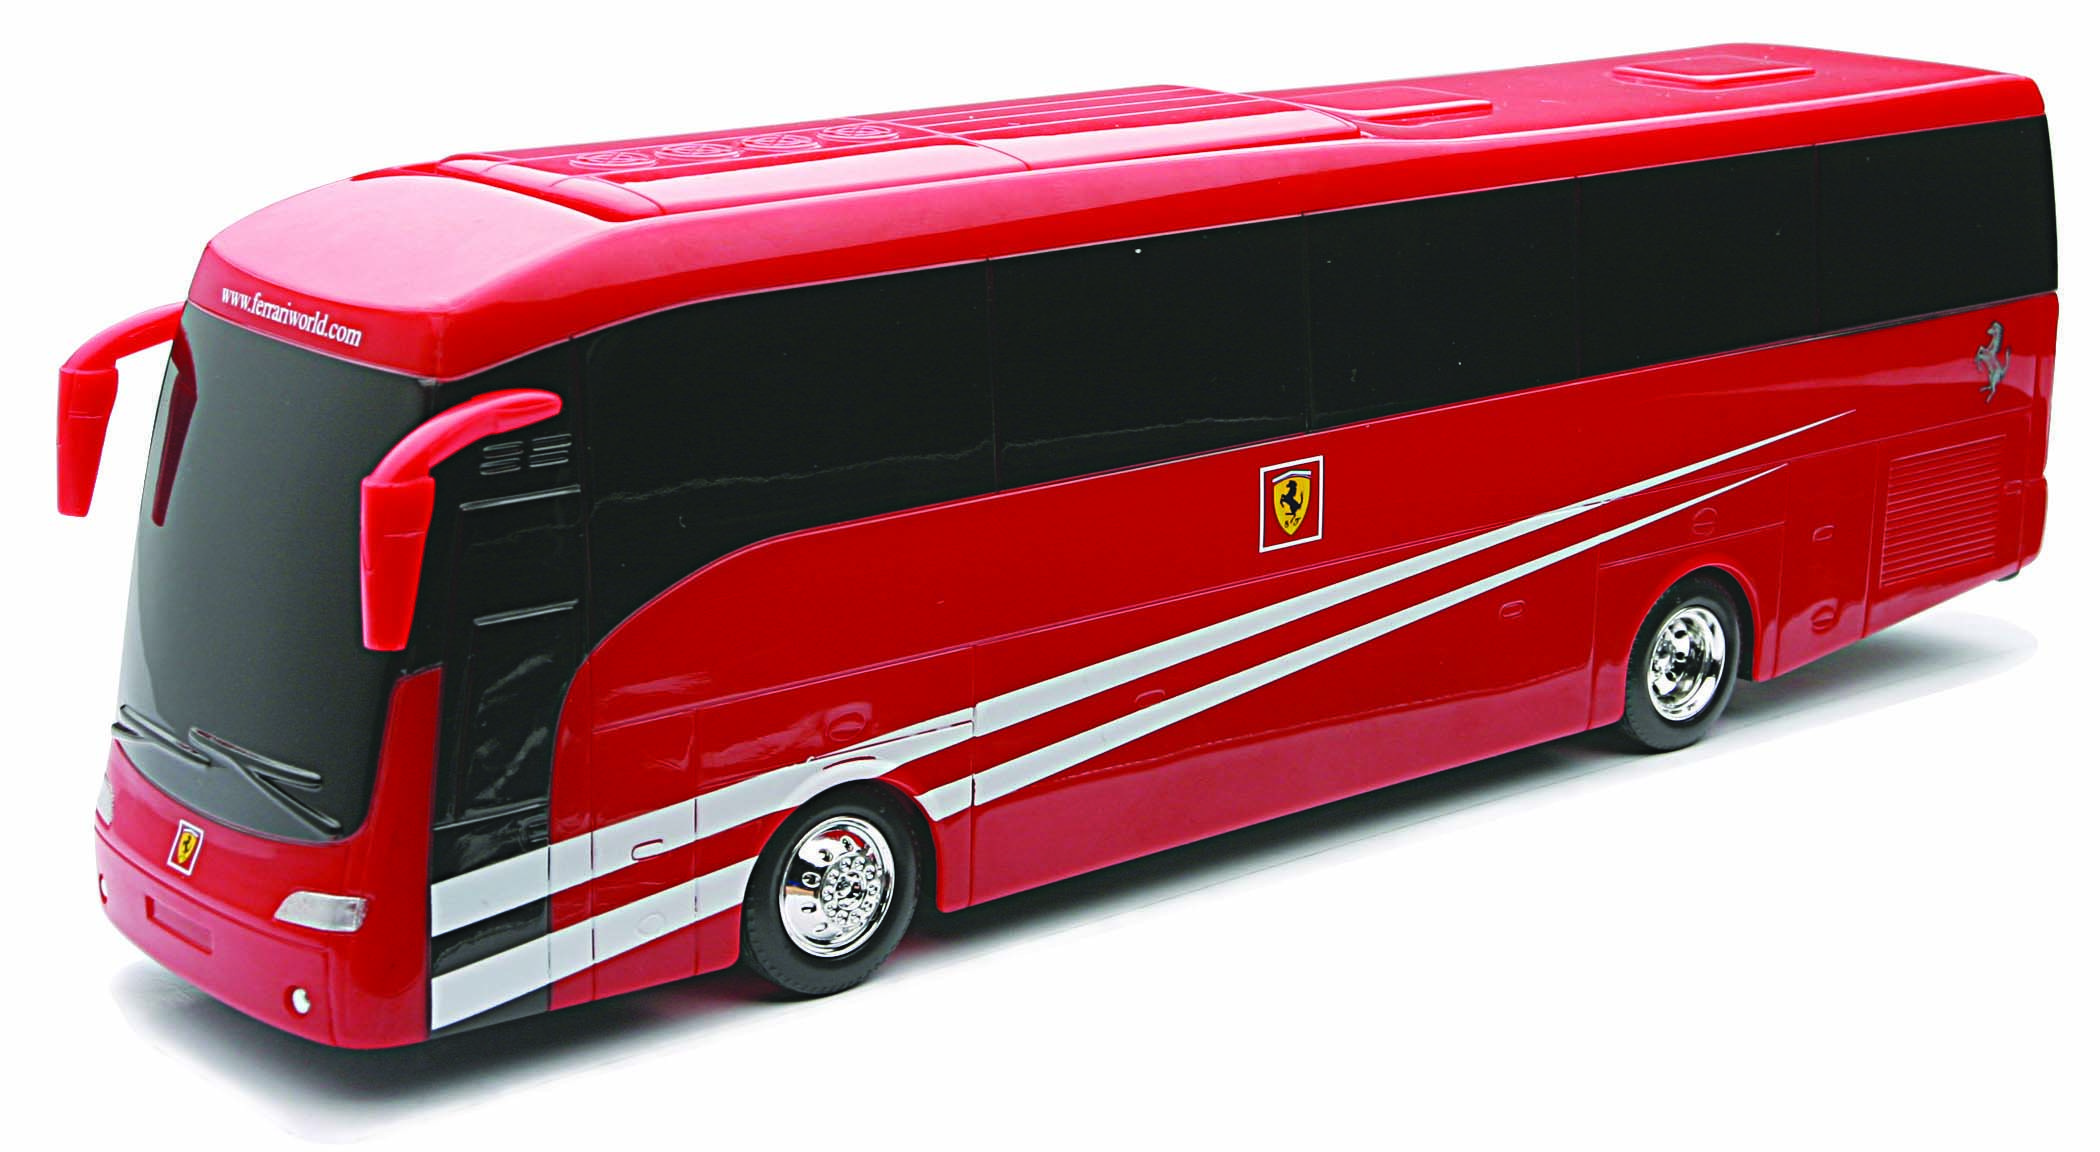 iveco bus domino ferrari 1 43 nry 88503 miniplanes. Black Bedroom Furniture Sets. Home Design Ideas